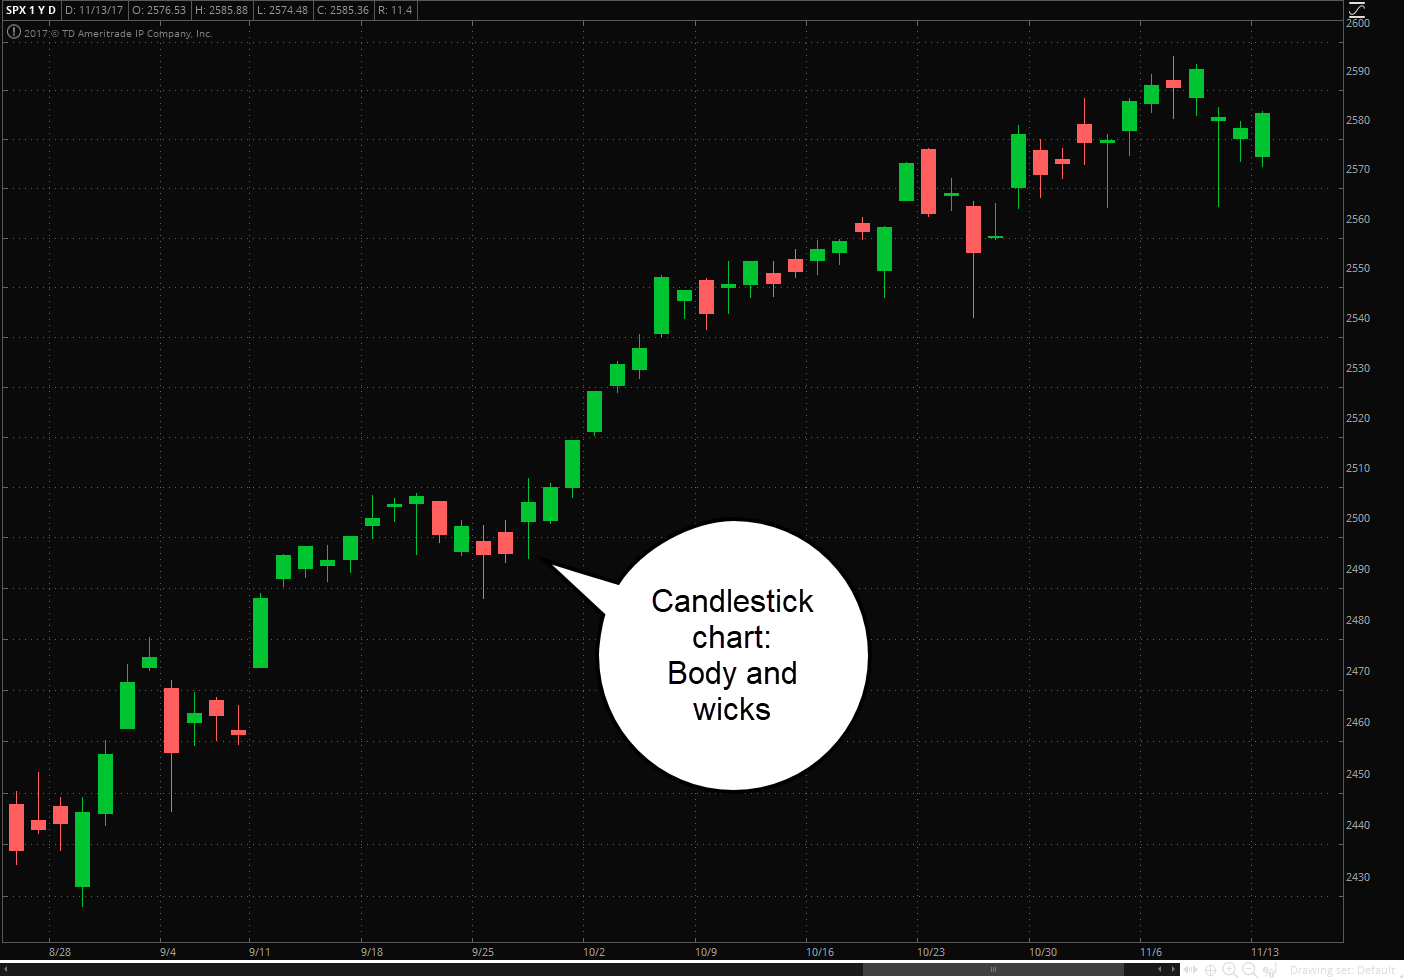 Candlestick chart sample